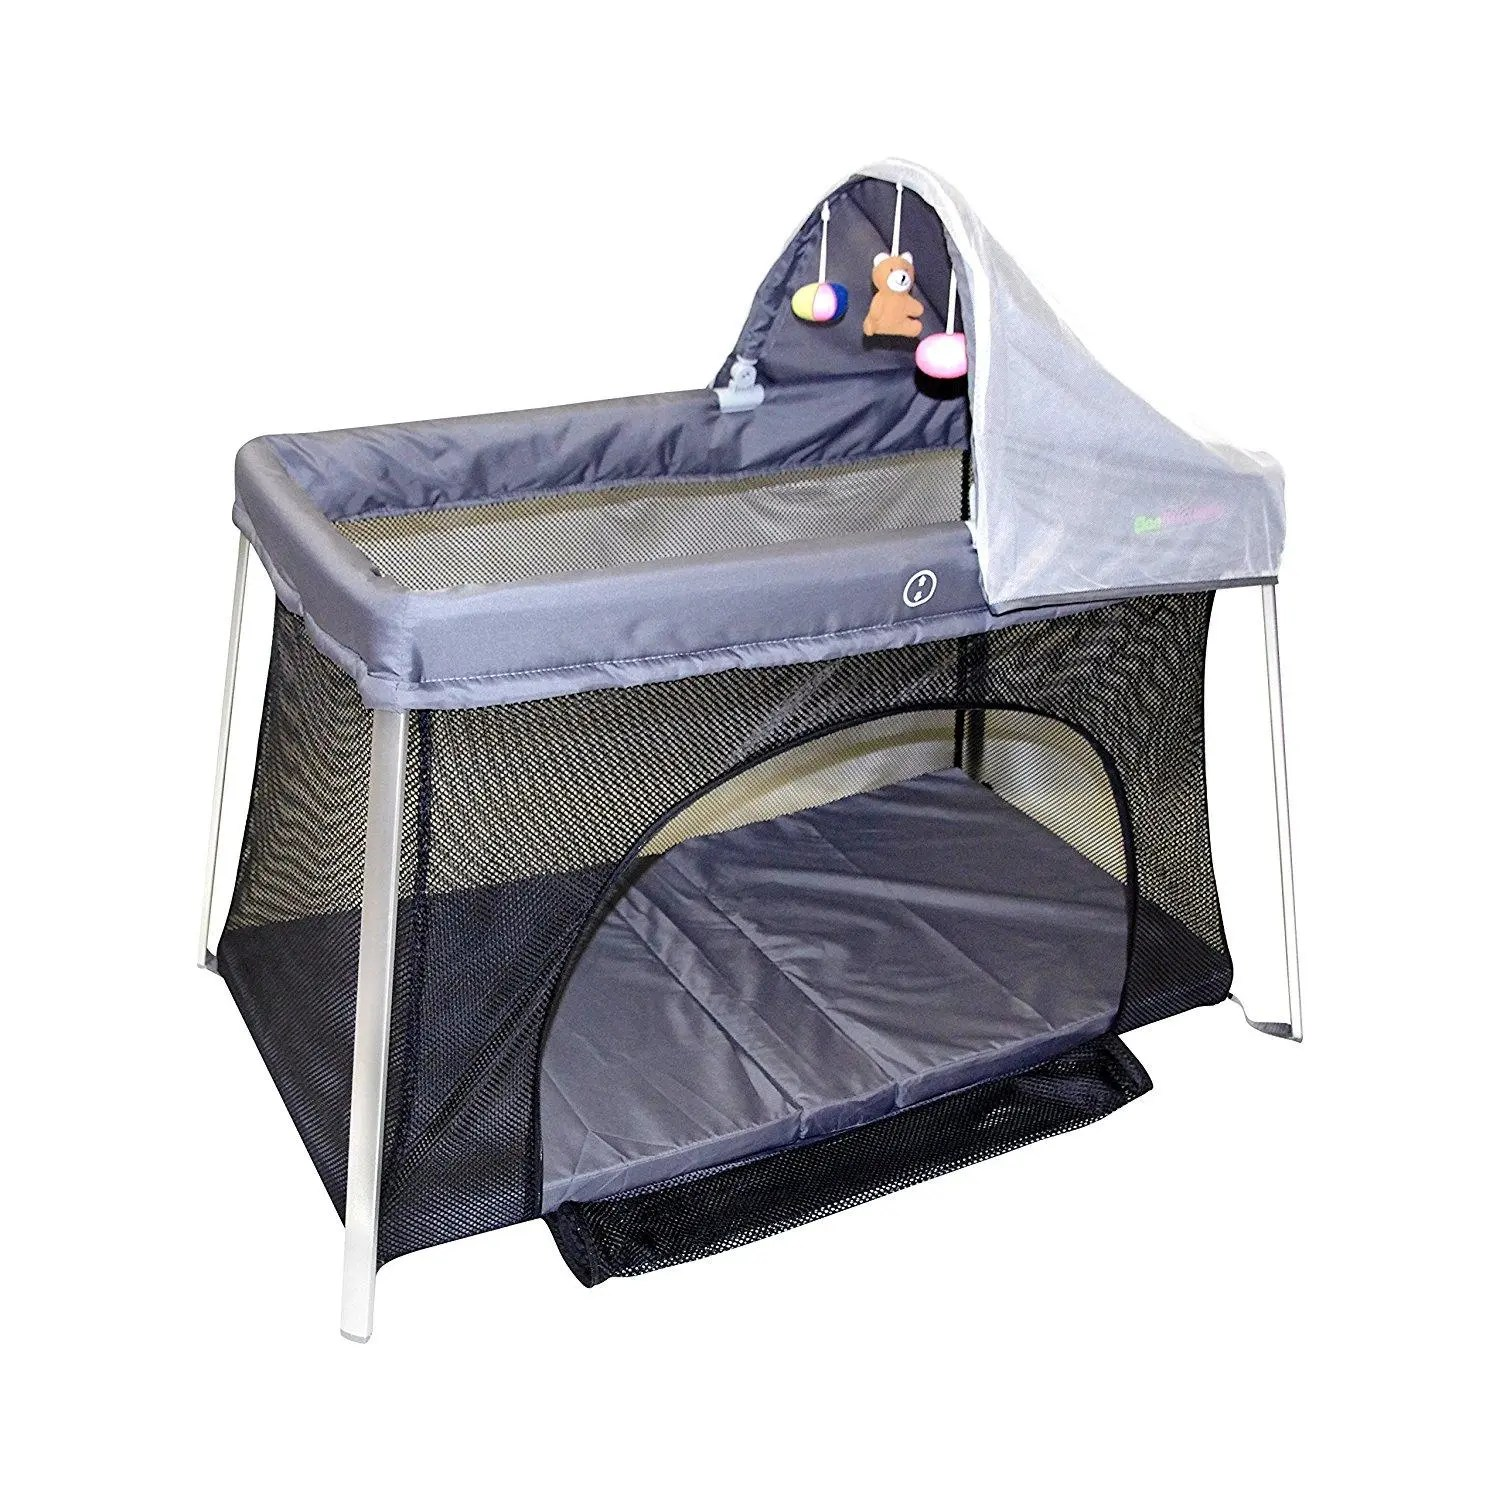 Elanbambino portable crib